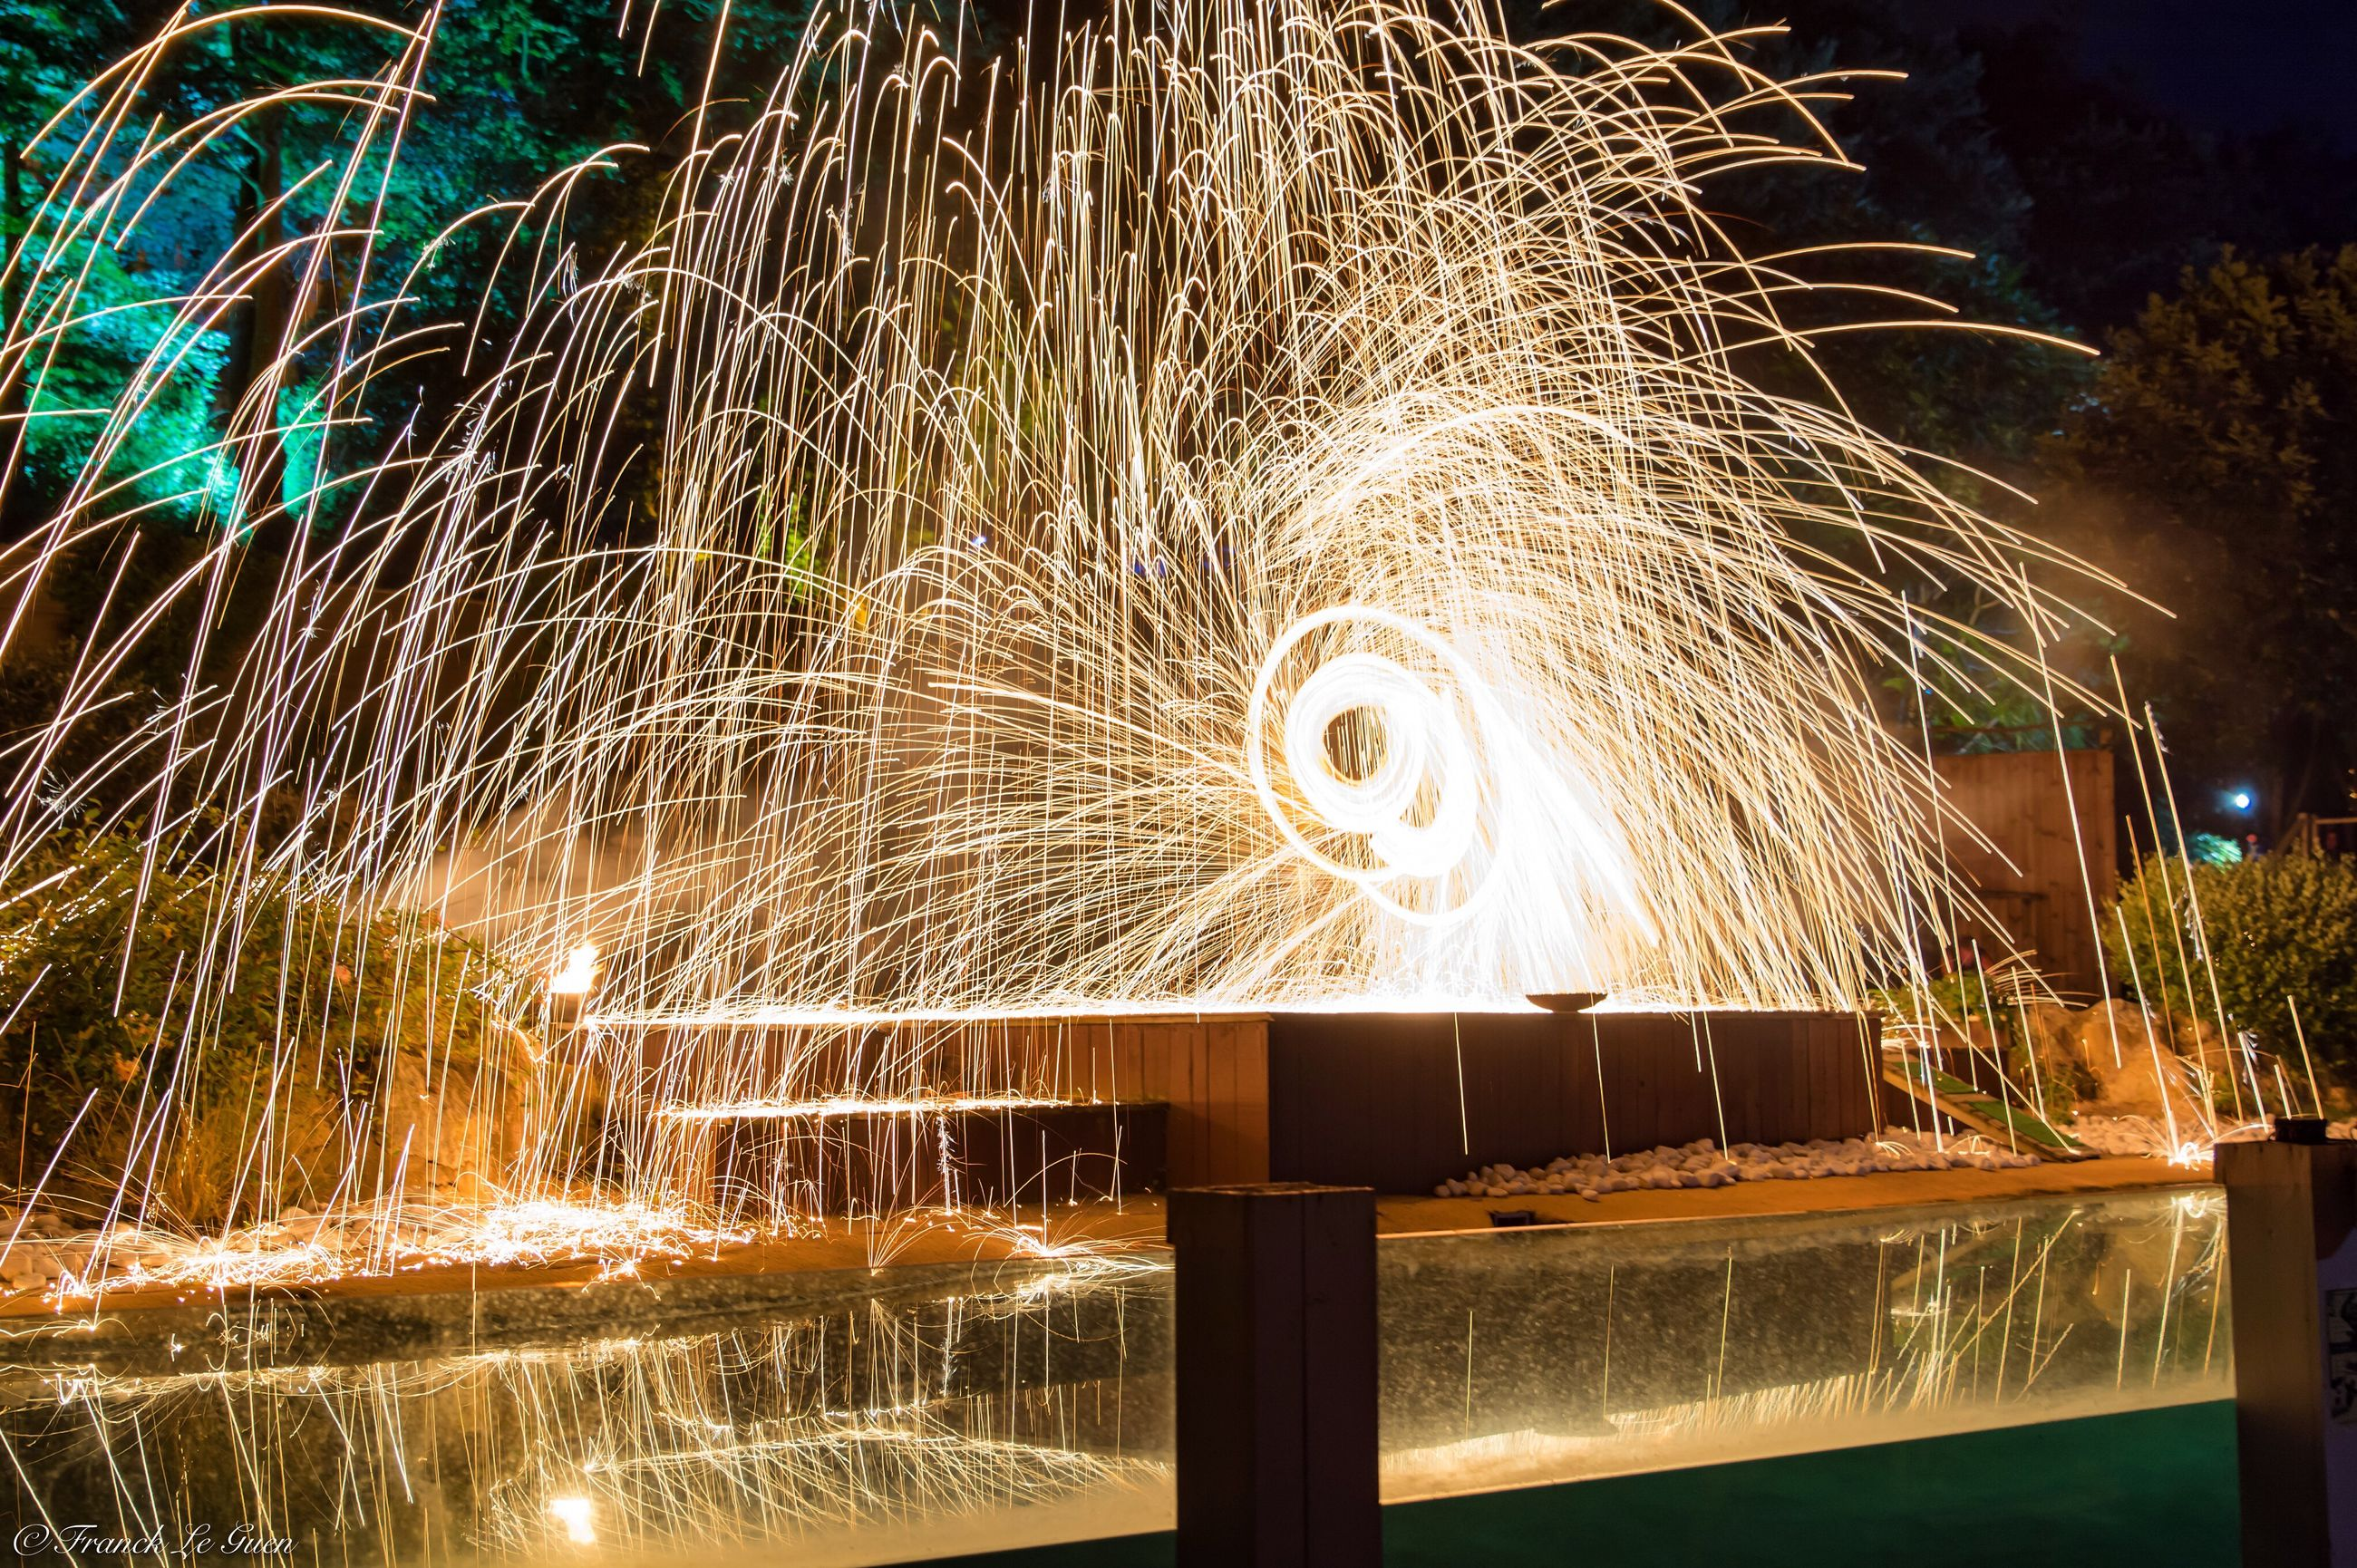 illuminated, night, long exposure, motion, glowing, water, lighting equipment, sparks, firework display, blurred motion, arts culture and entertainment, celebration, exploding, light trail, light, outdoors, sky, no people, firework, entertainment, lit